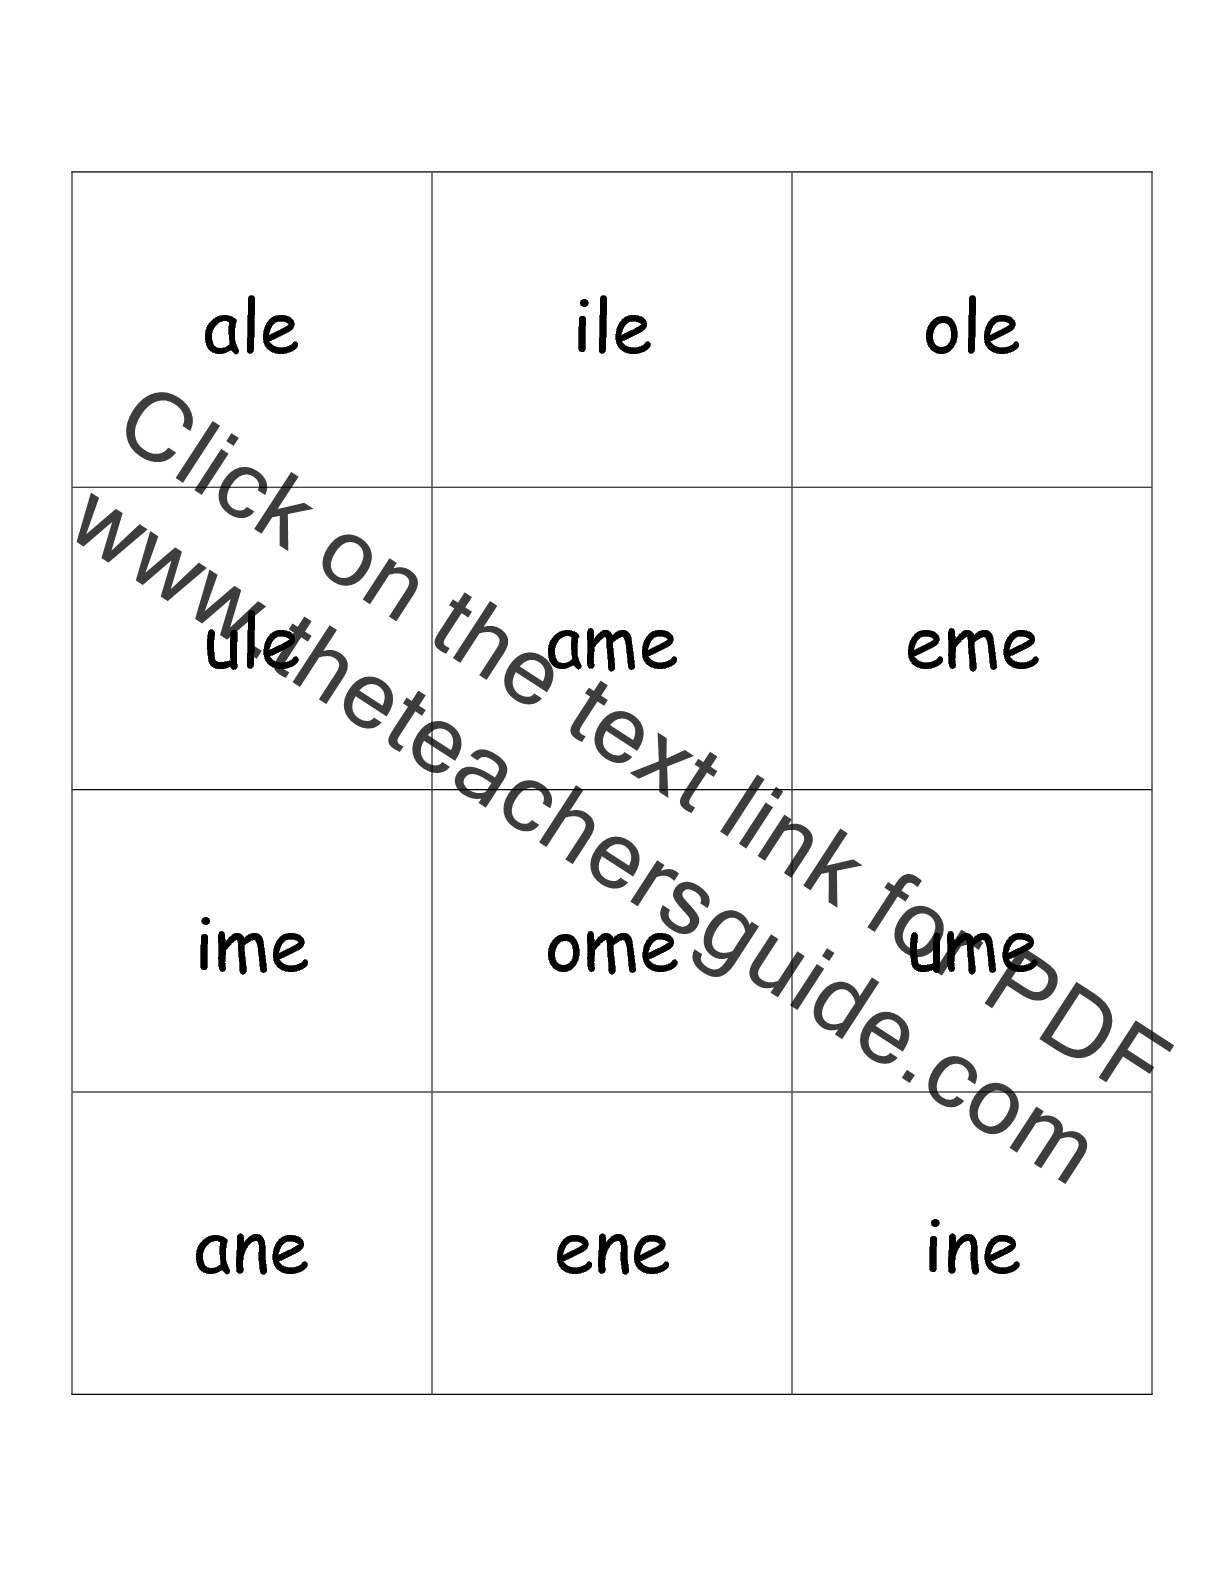 worksheet Long Vowel Worksheets free phonics printouts from the teachers guide phoncis flashcards long vowel letters two